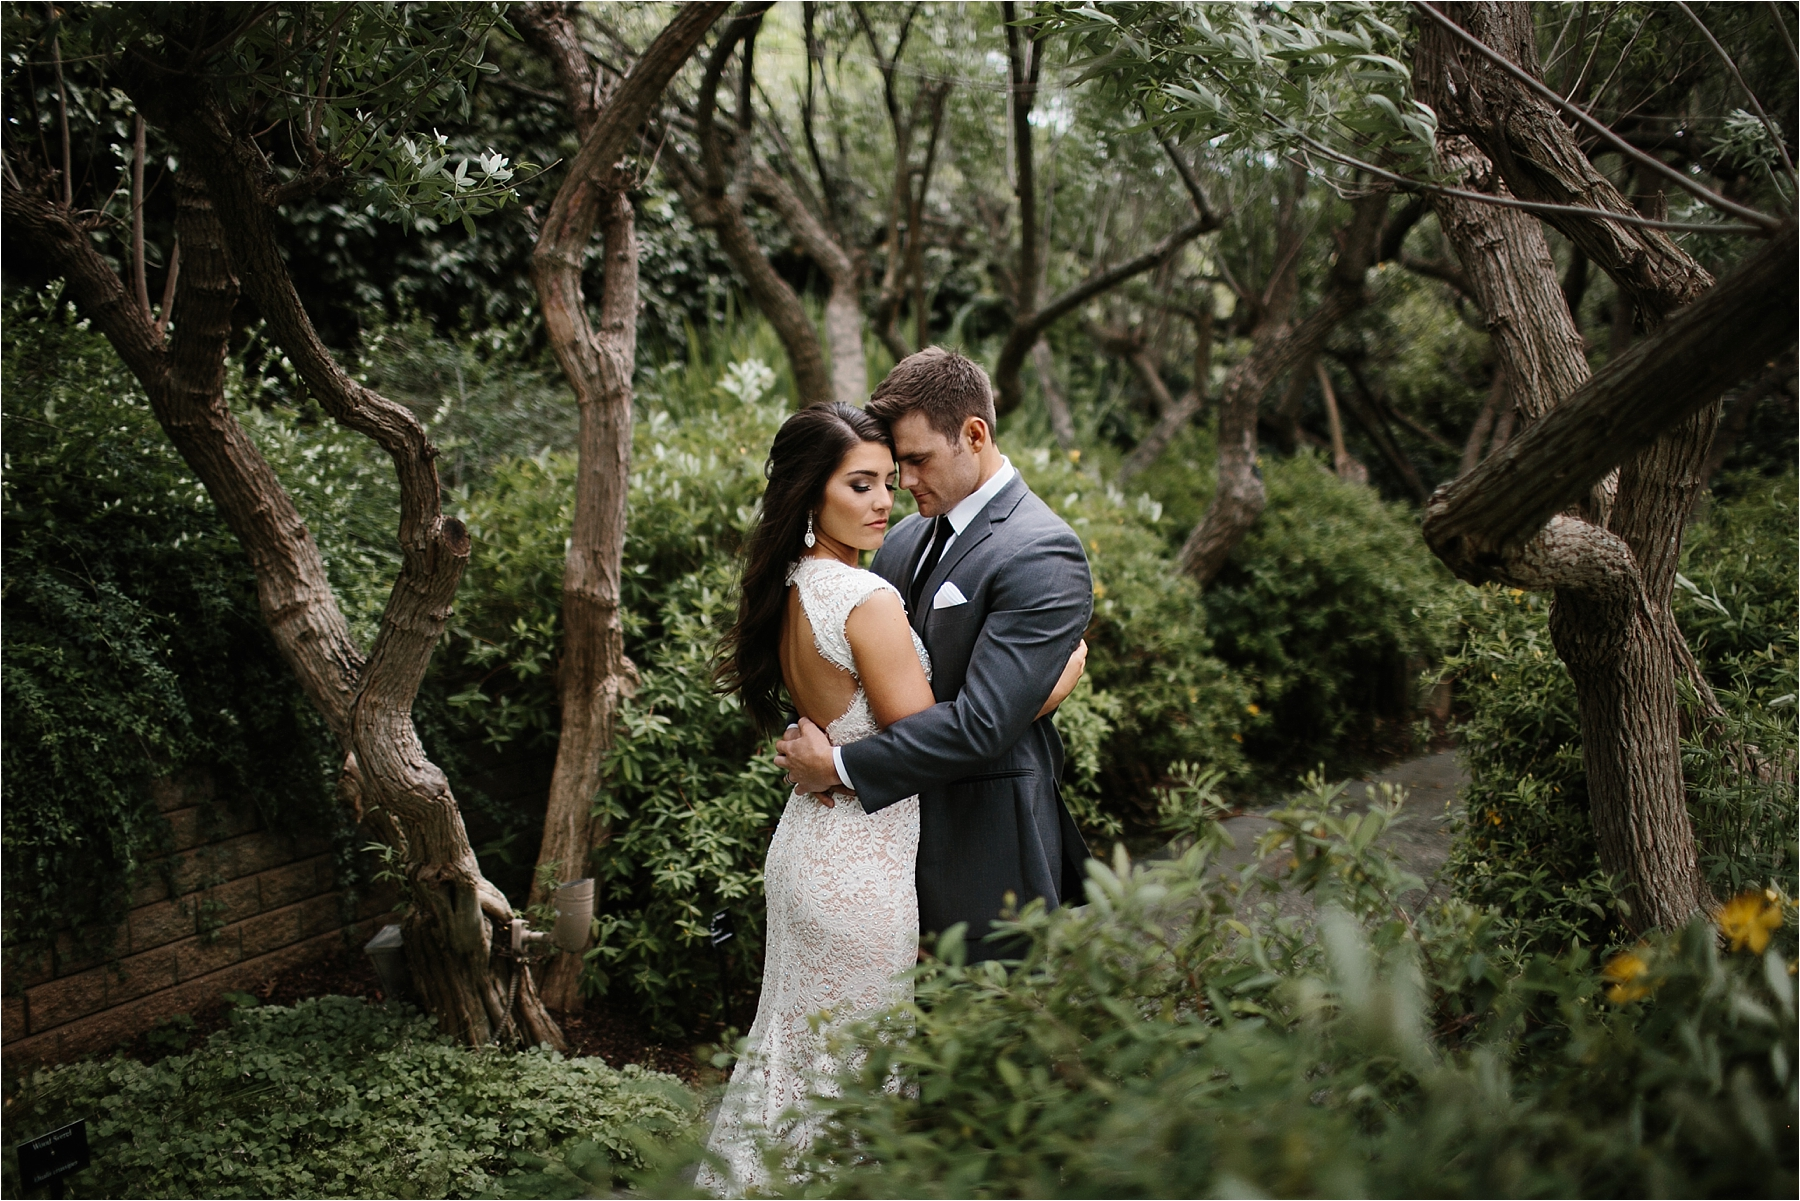 Devyn + Caden __ a Dallas Arboretum Garden Style Wedding by North Texas Wedding Photographer Rachel Meagan Photography __ 043